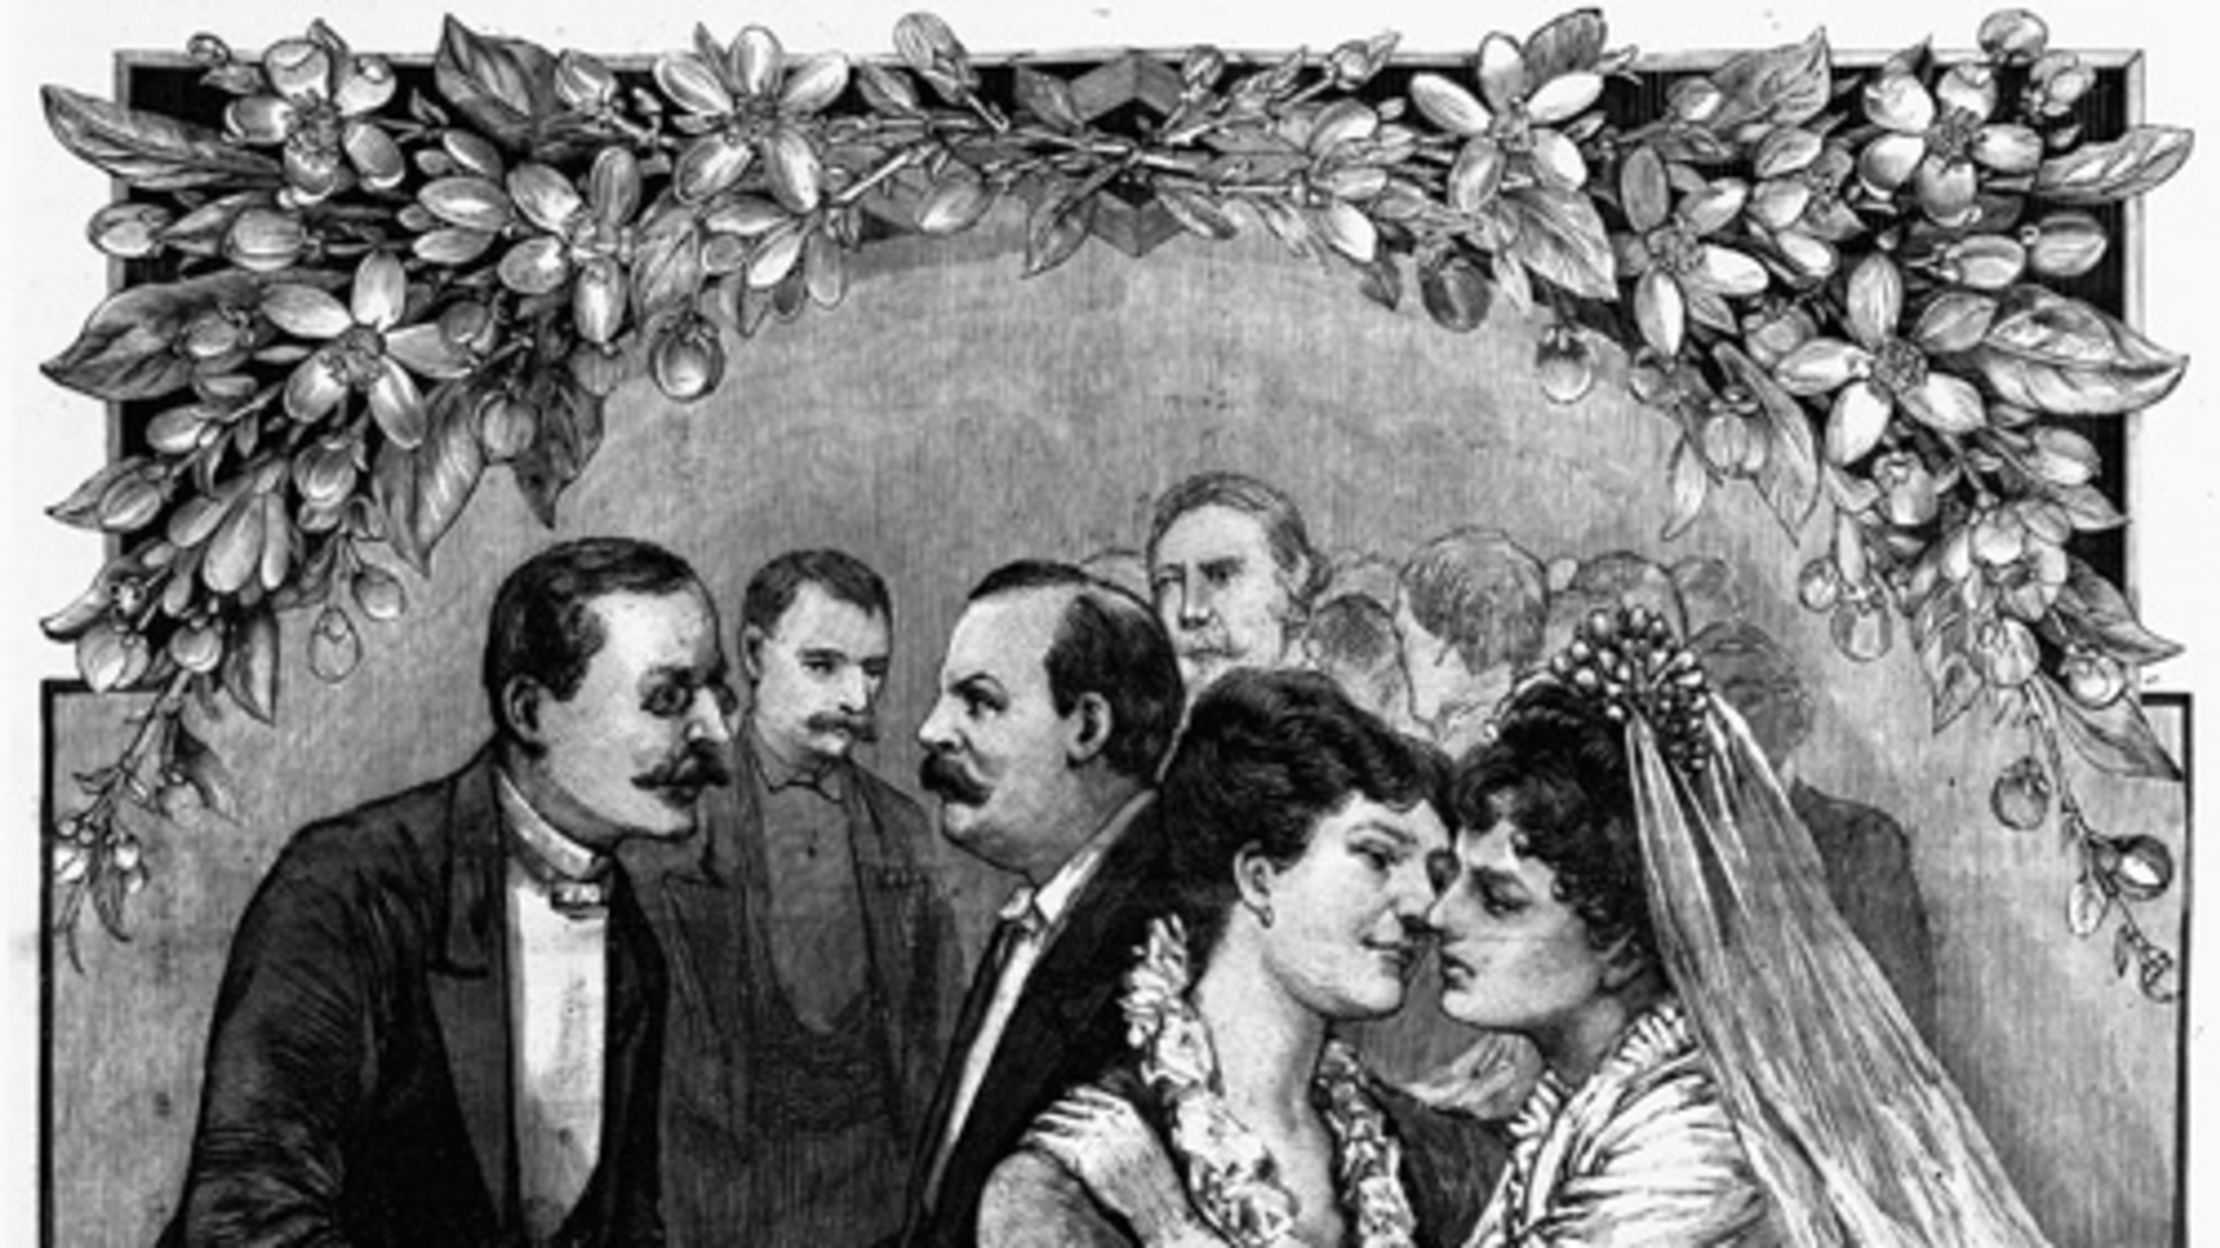 On This Date In 1886 Grover Cleveland Married 21 Year Old Frances Folsom In The White House Mental Floss